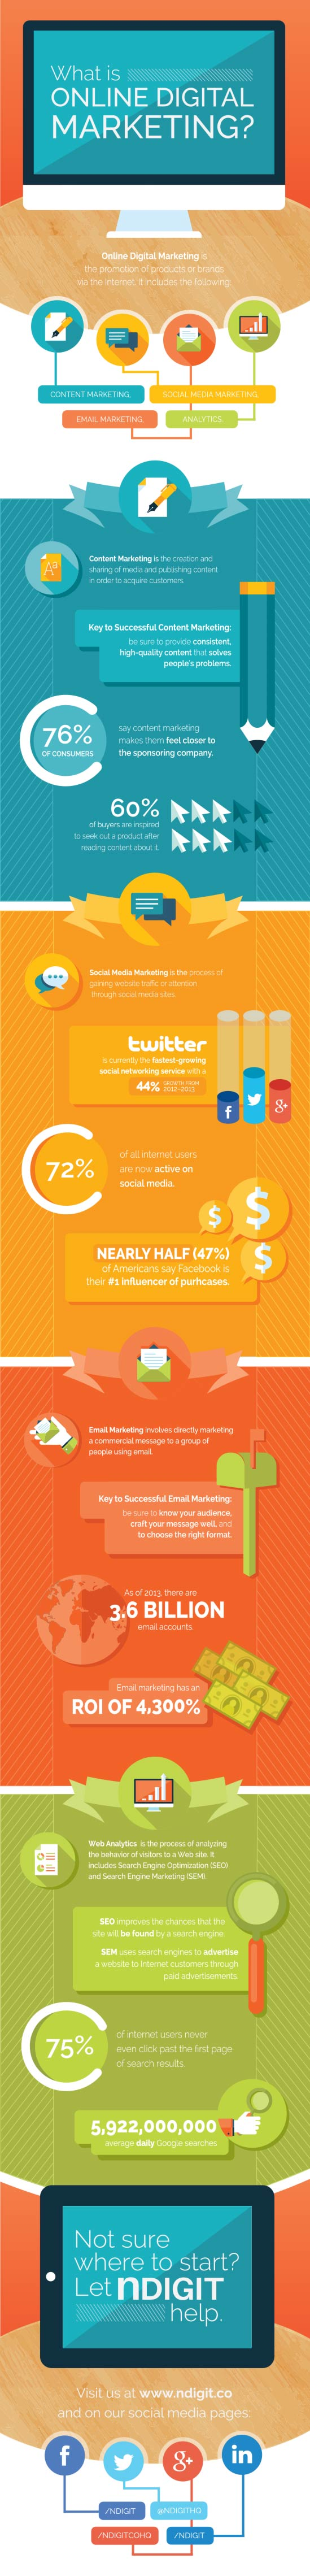 nDigit_Infographic_What-Is-Online-Digital-Marketing